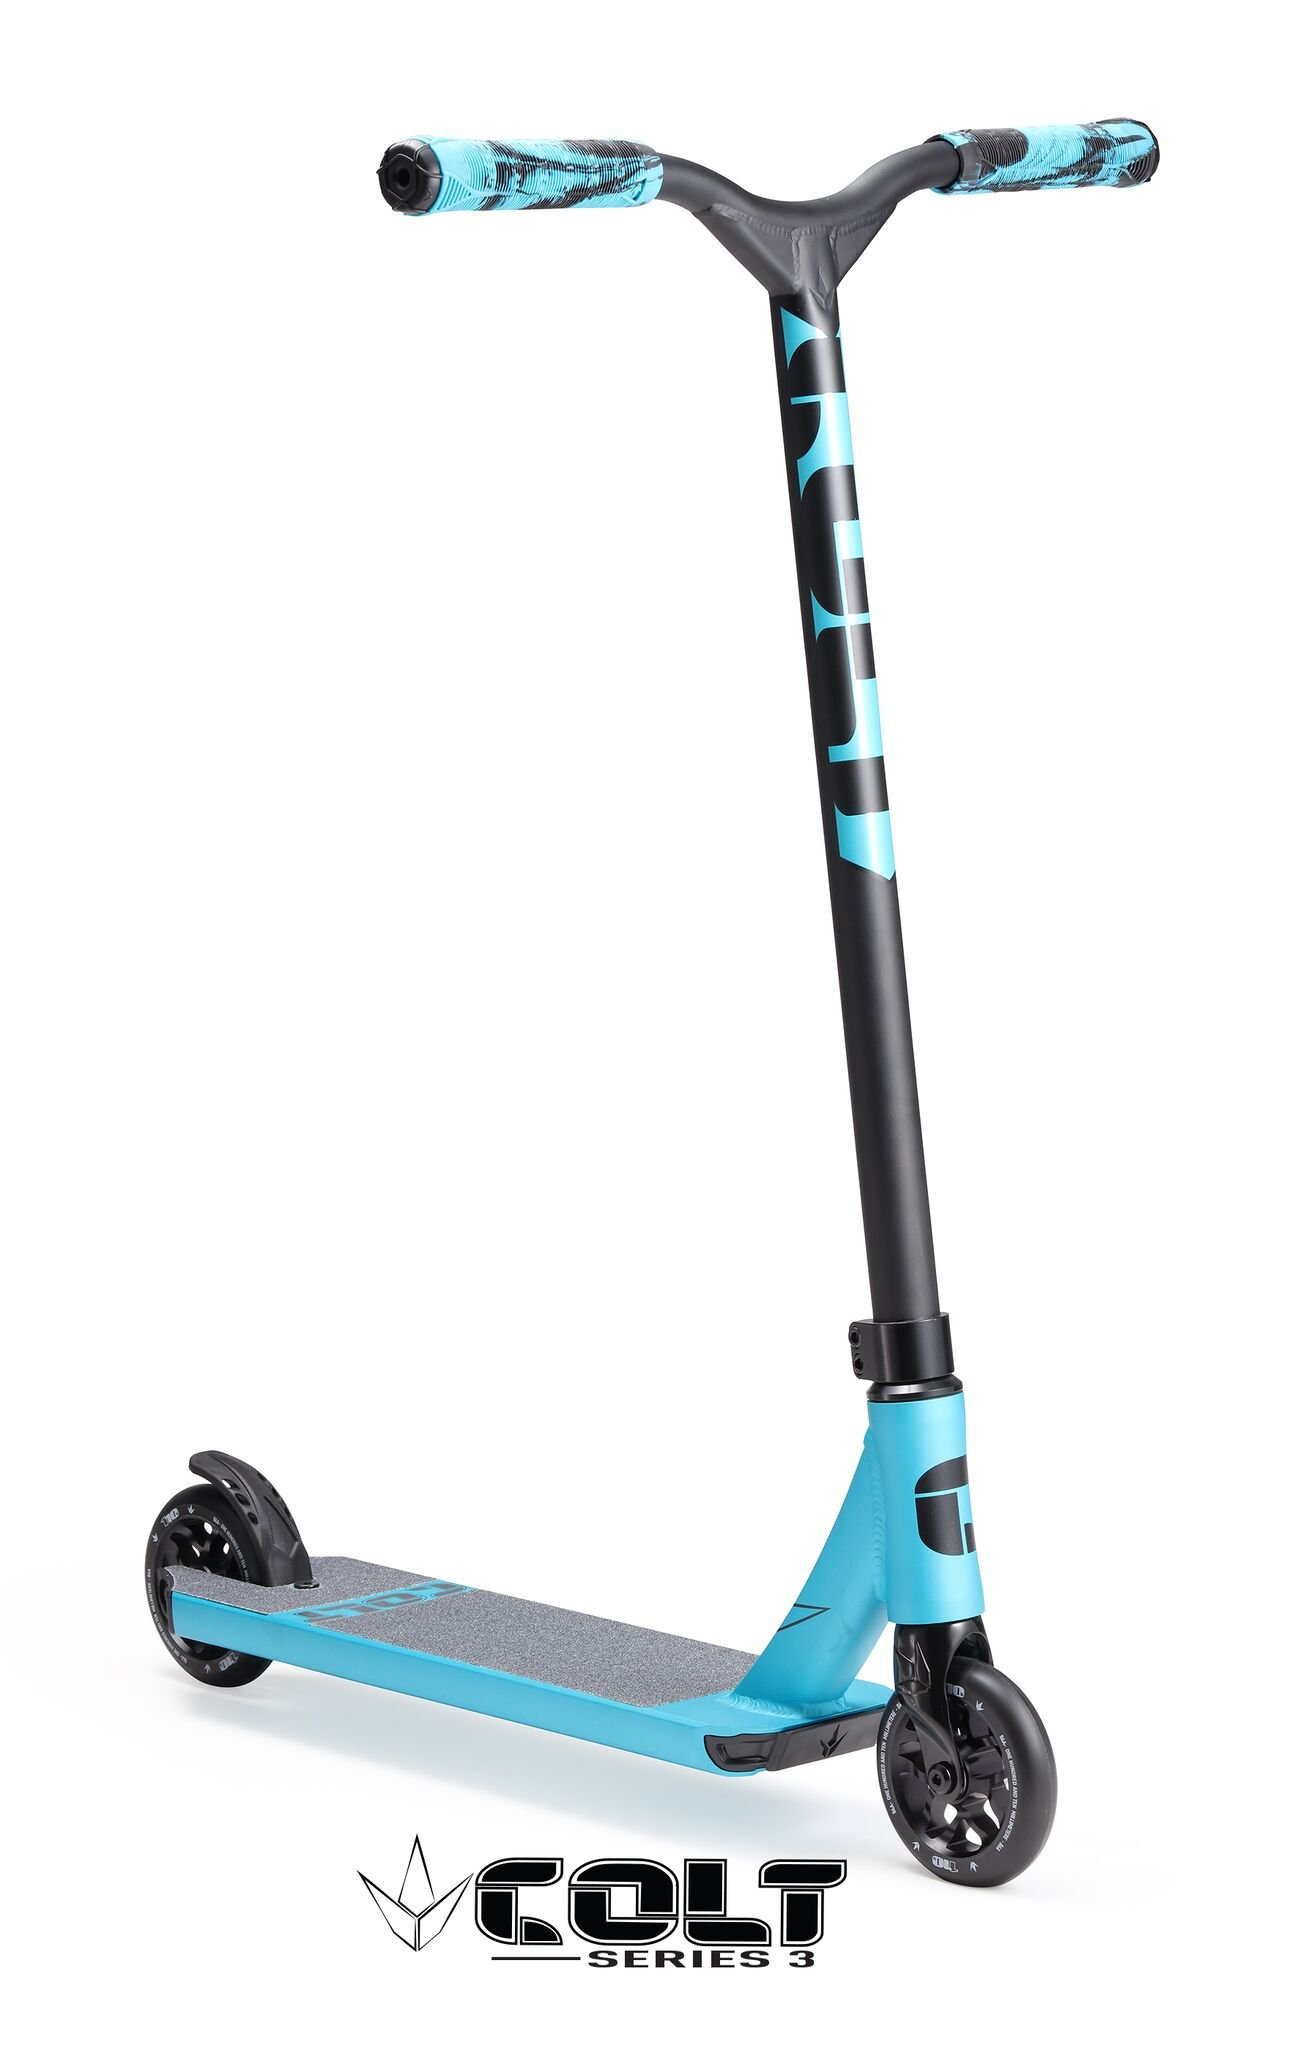 Envy Series 3 Colt Scooter (Blue) by Envy Scooters